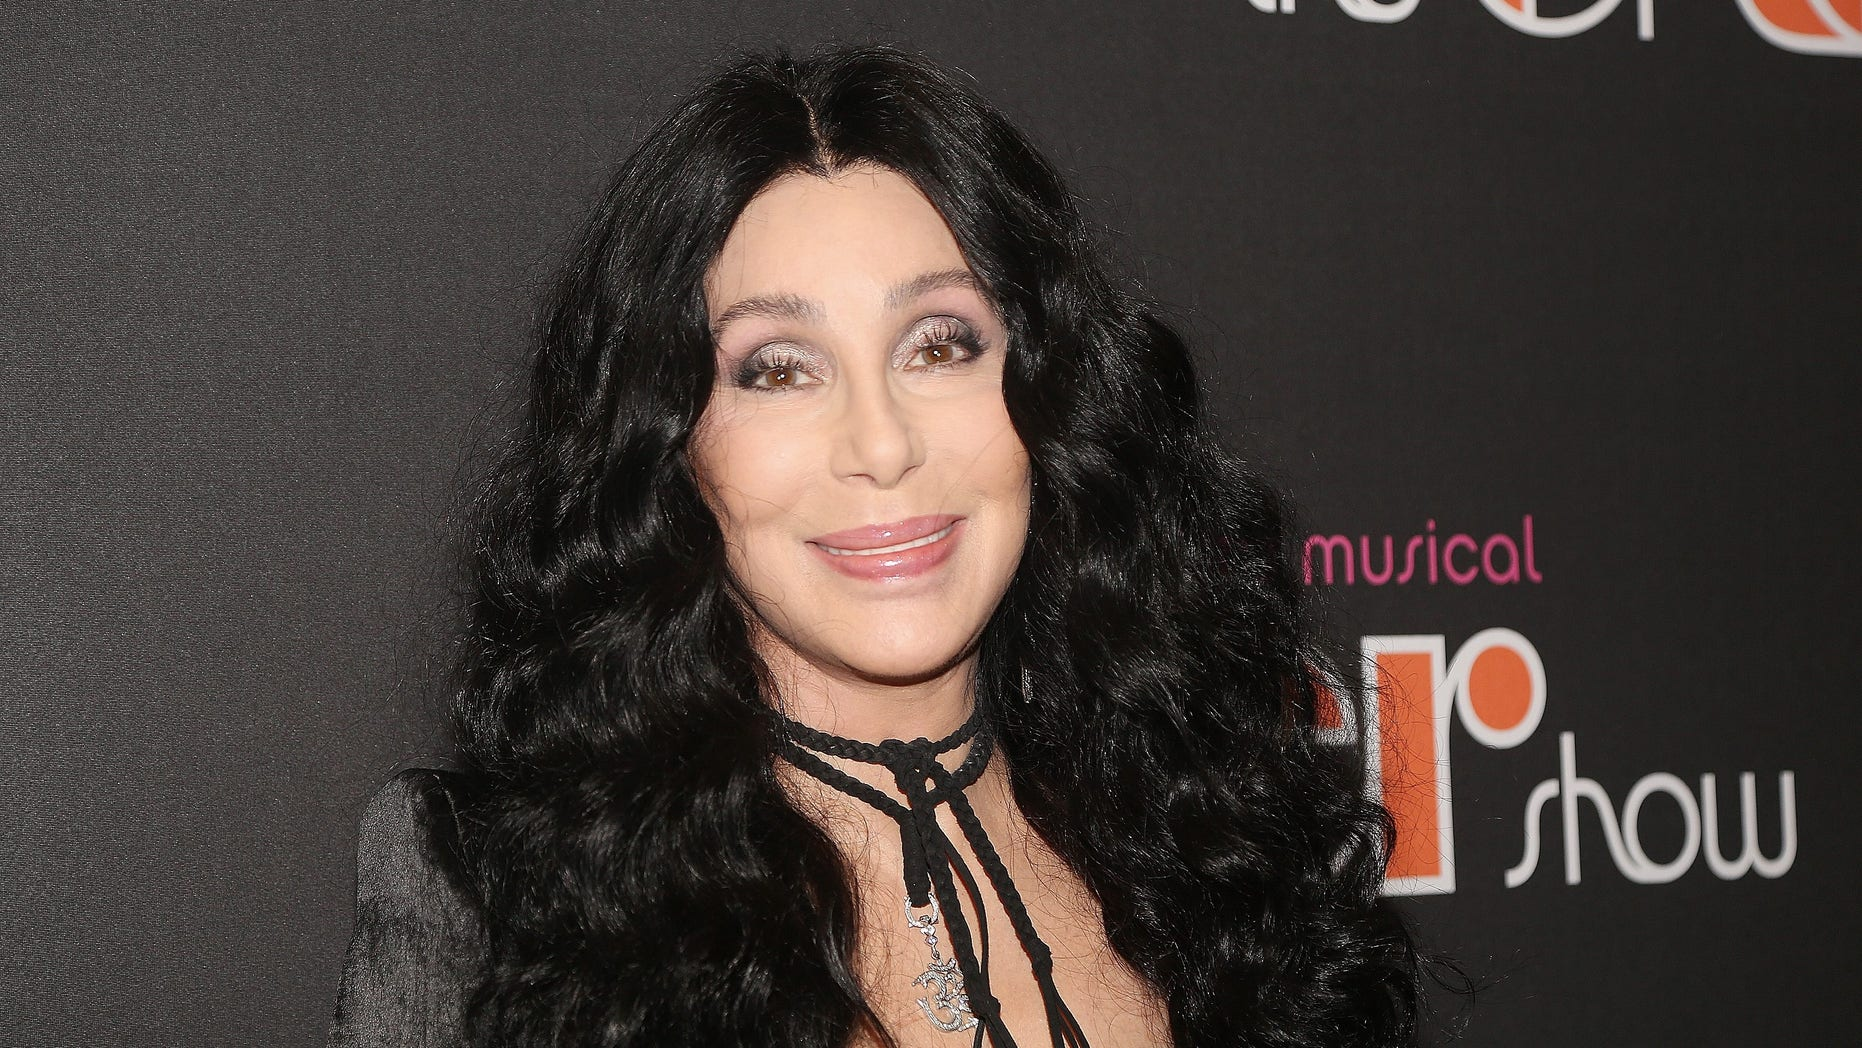 Cher said she's boycotting Facebook and Google.